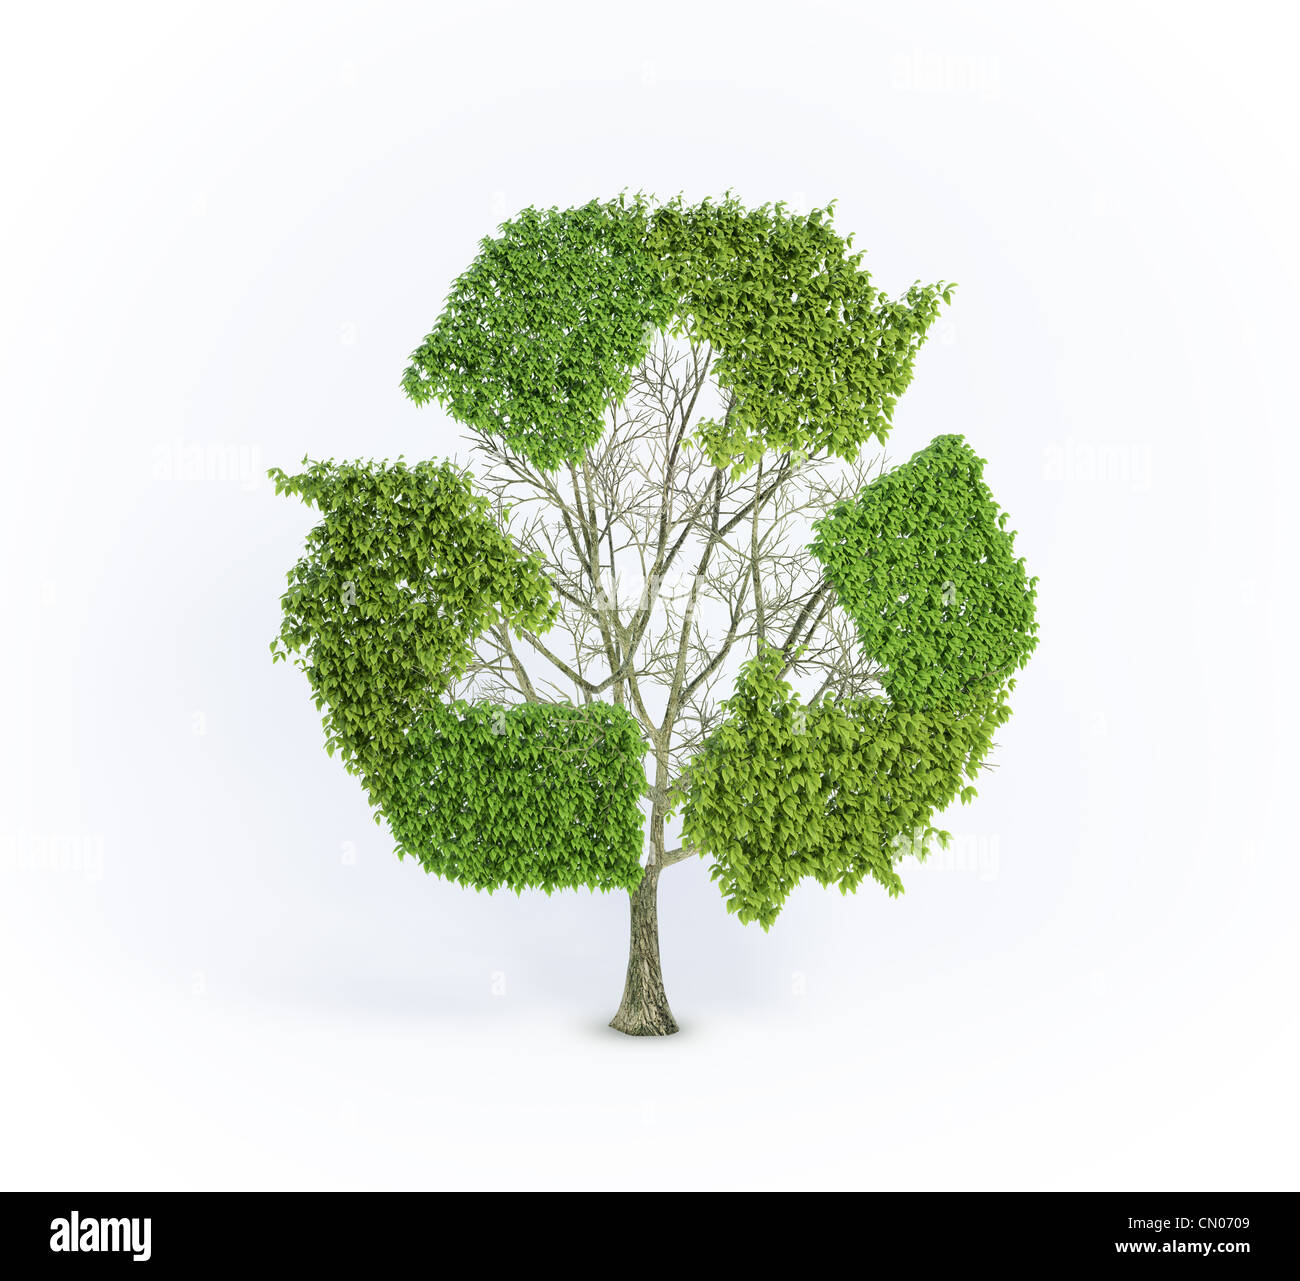 Renewable Development Concept Tree With The Recycling Symbol Stock